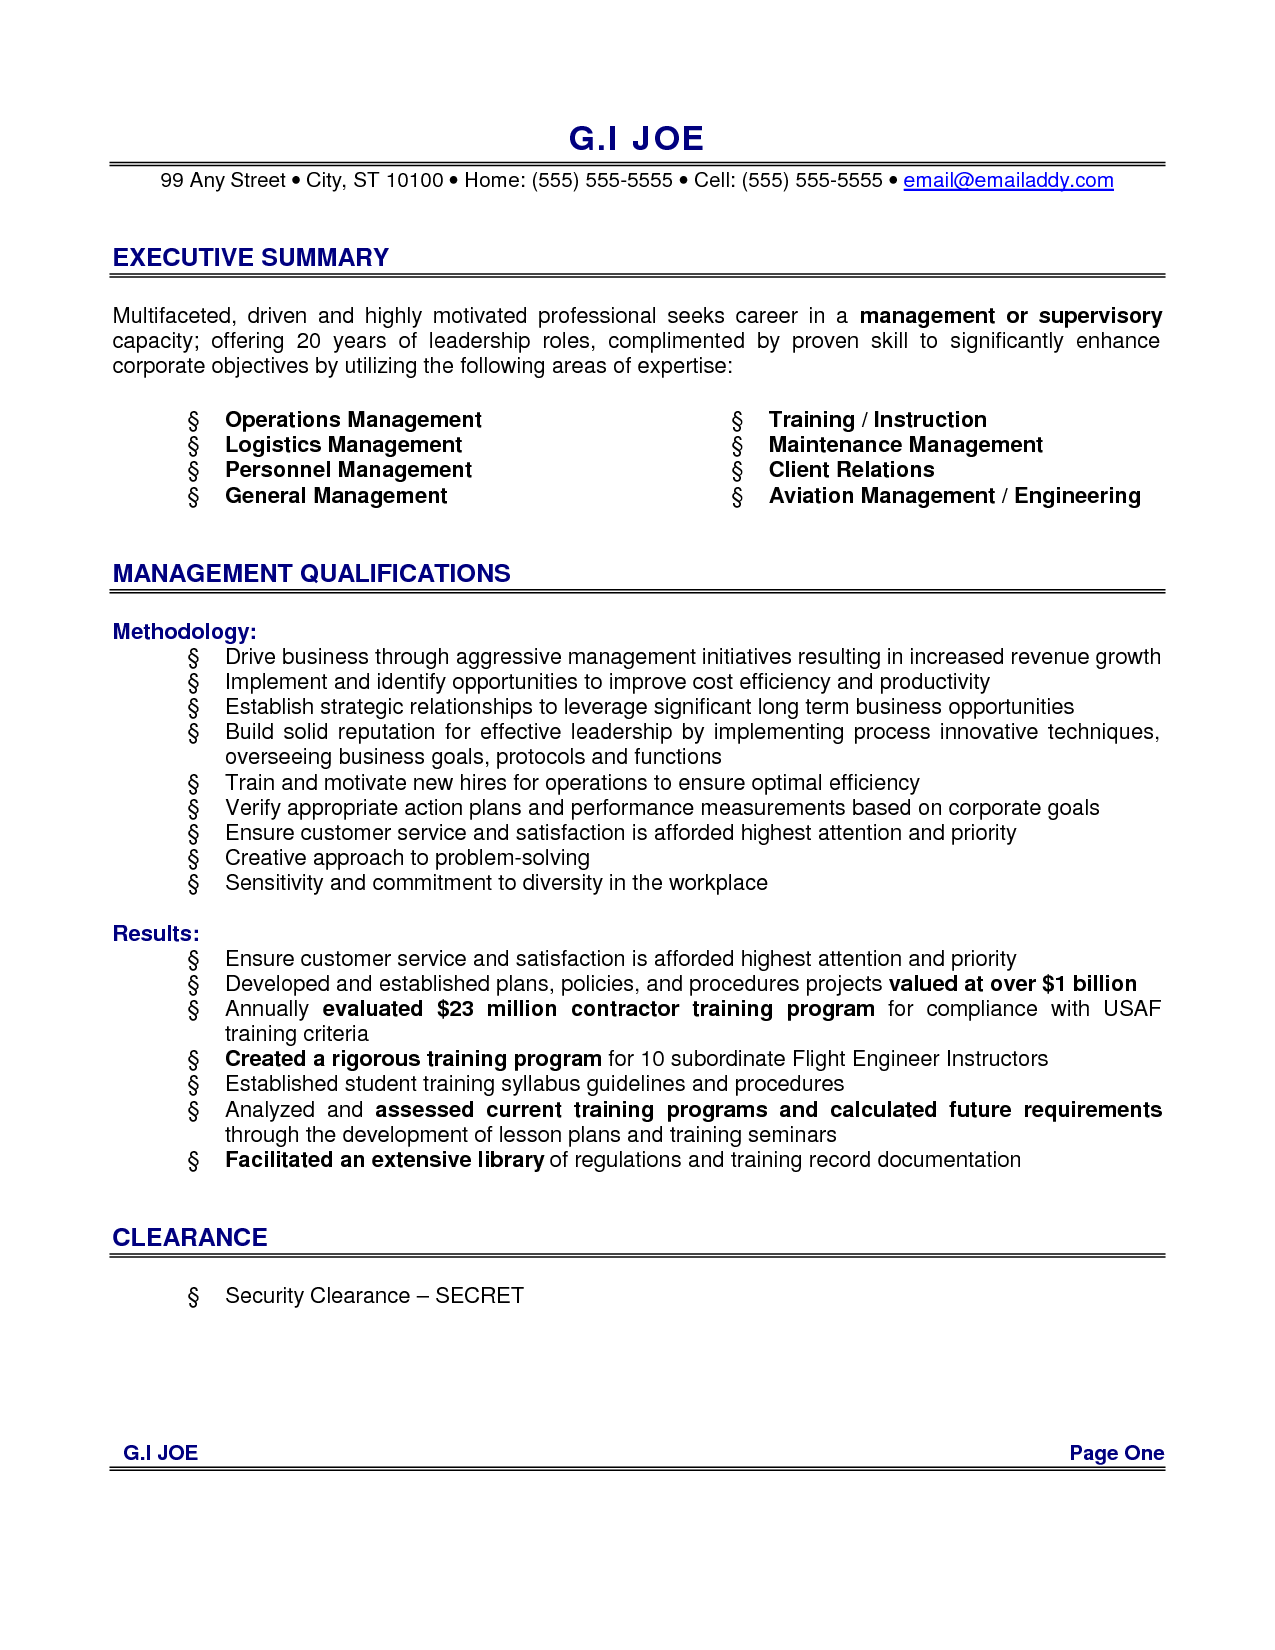 Resume-Examples For Executive Summary With Management Qualifications ...